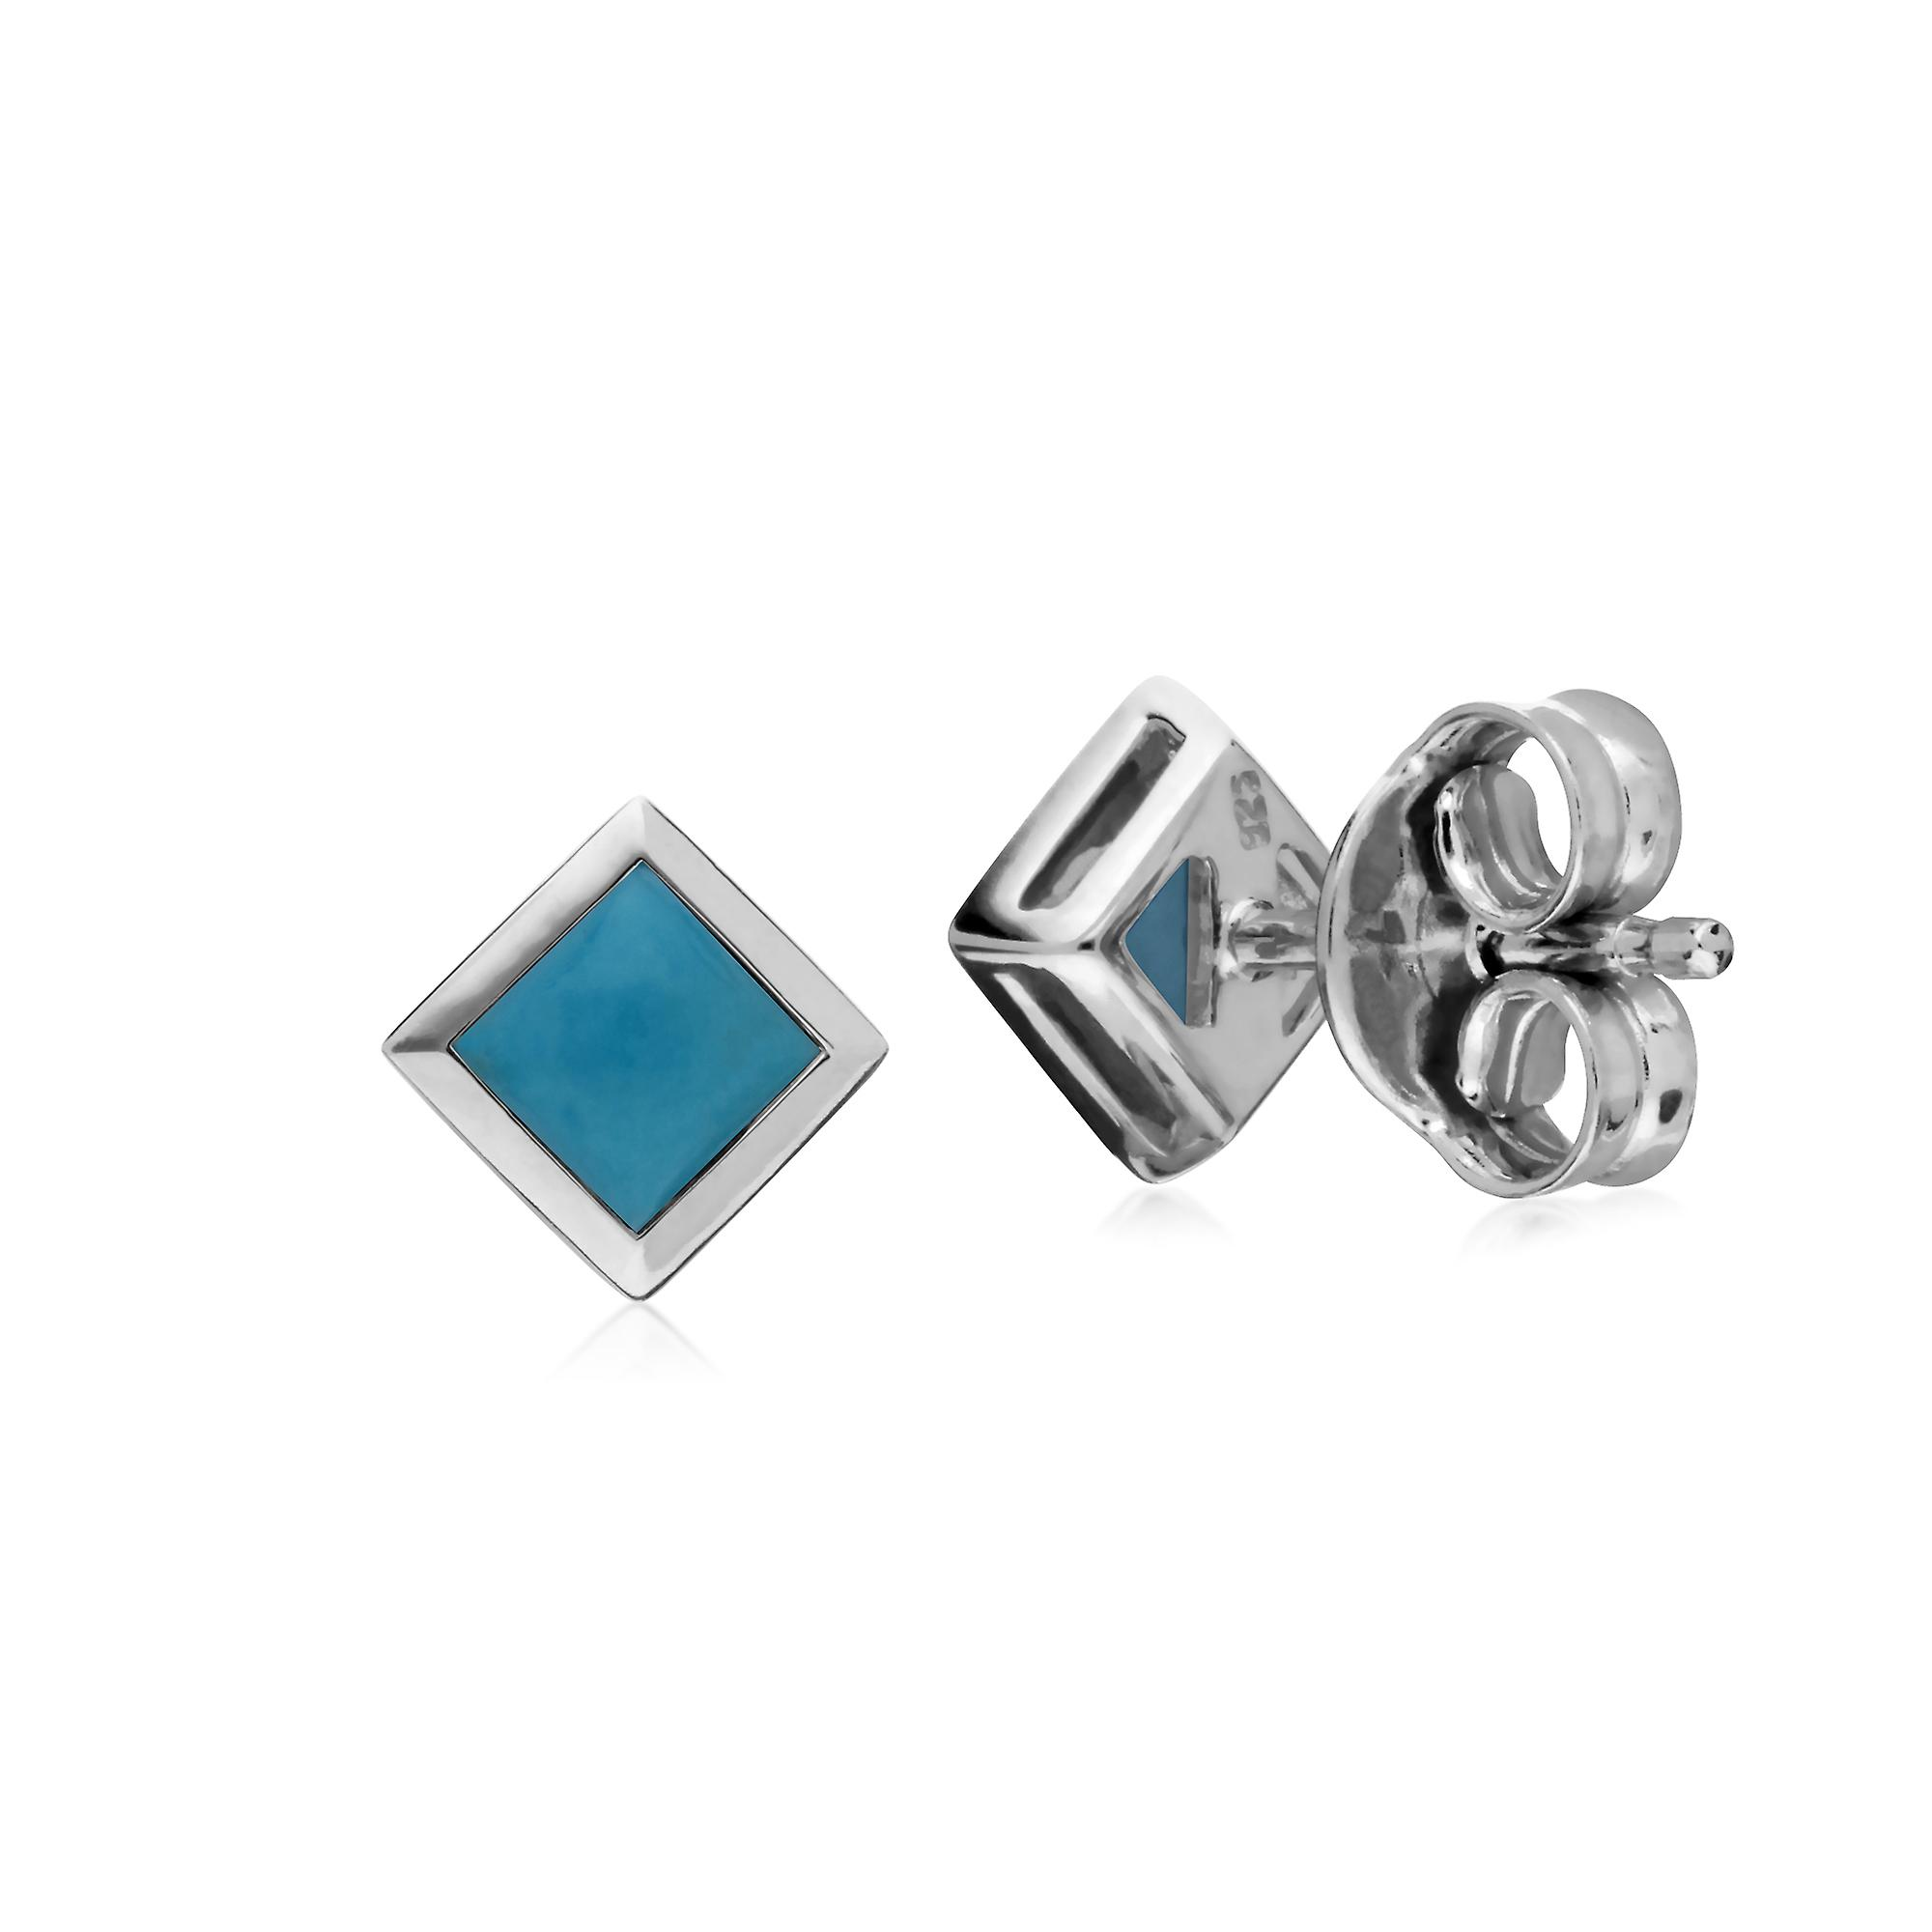 Gemondo Sterling Silver Simple Turquoise Bezel Square Stud Earrings